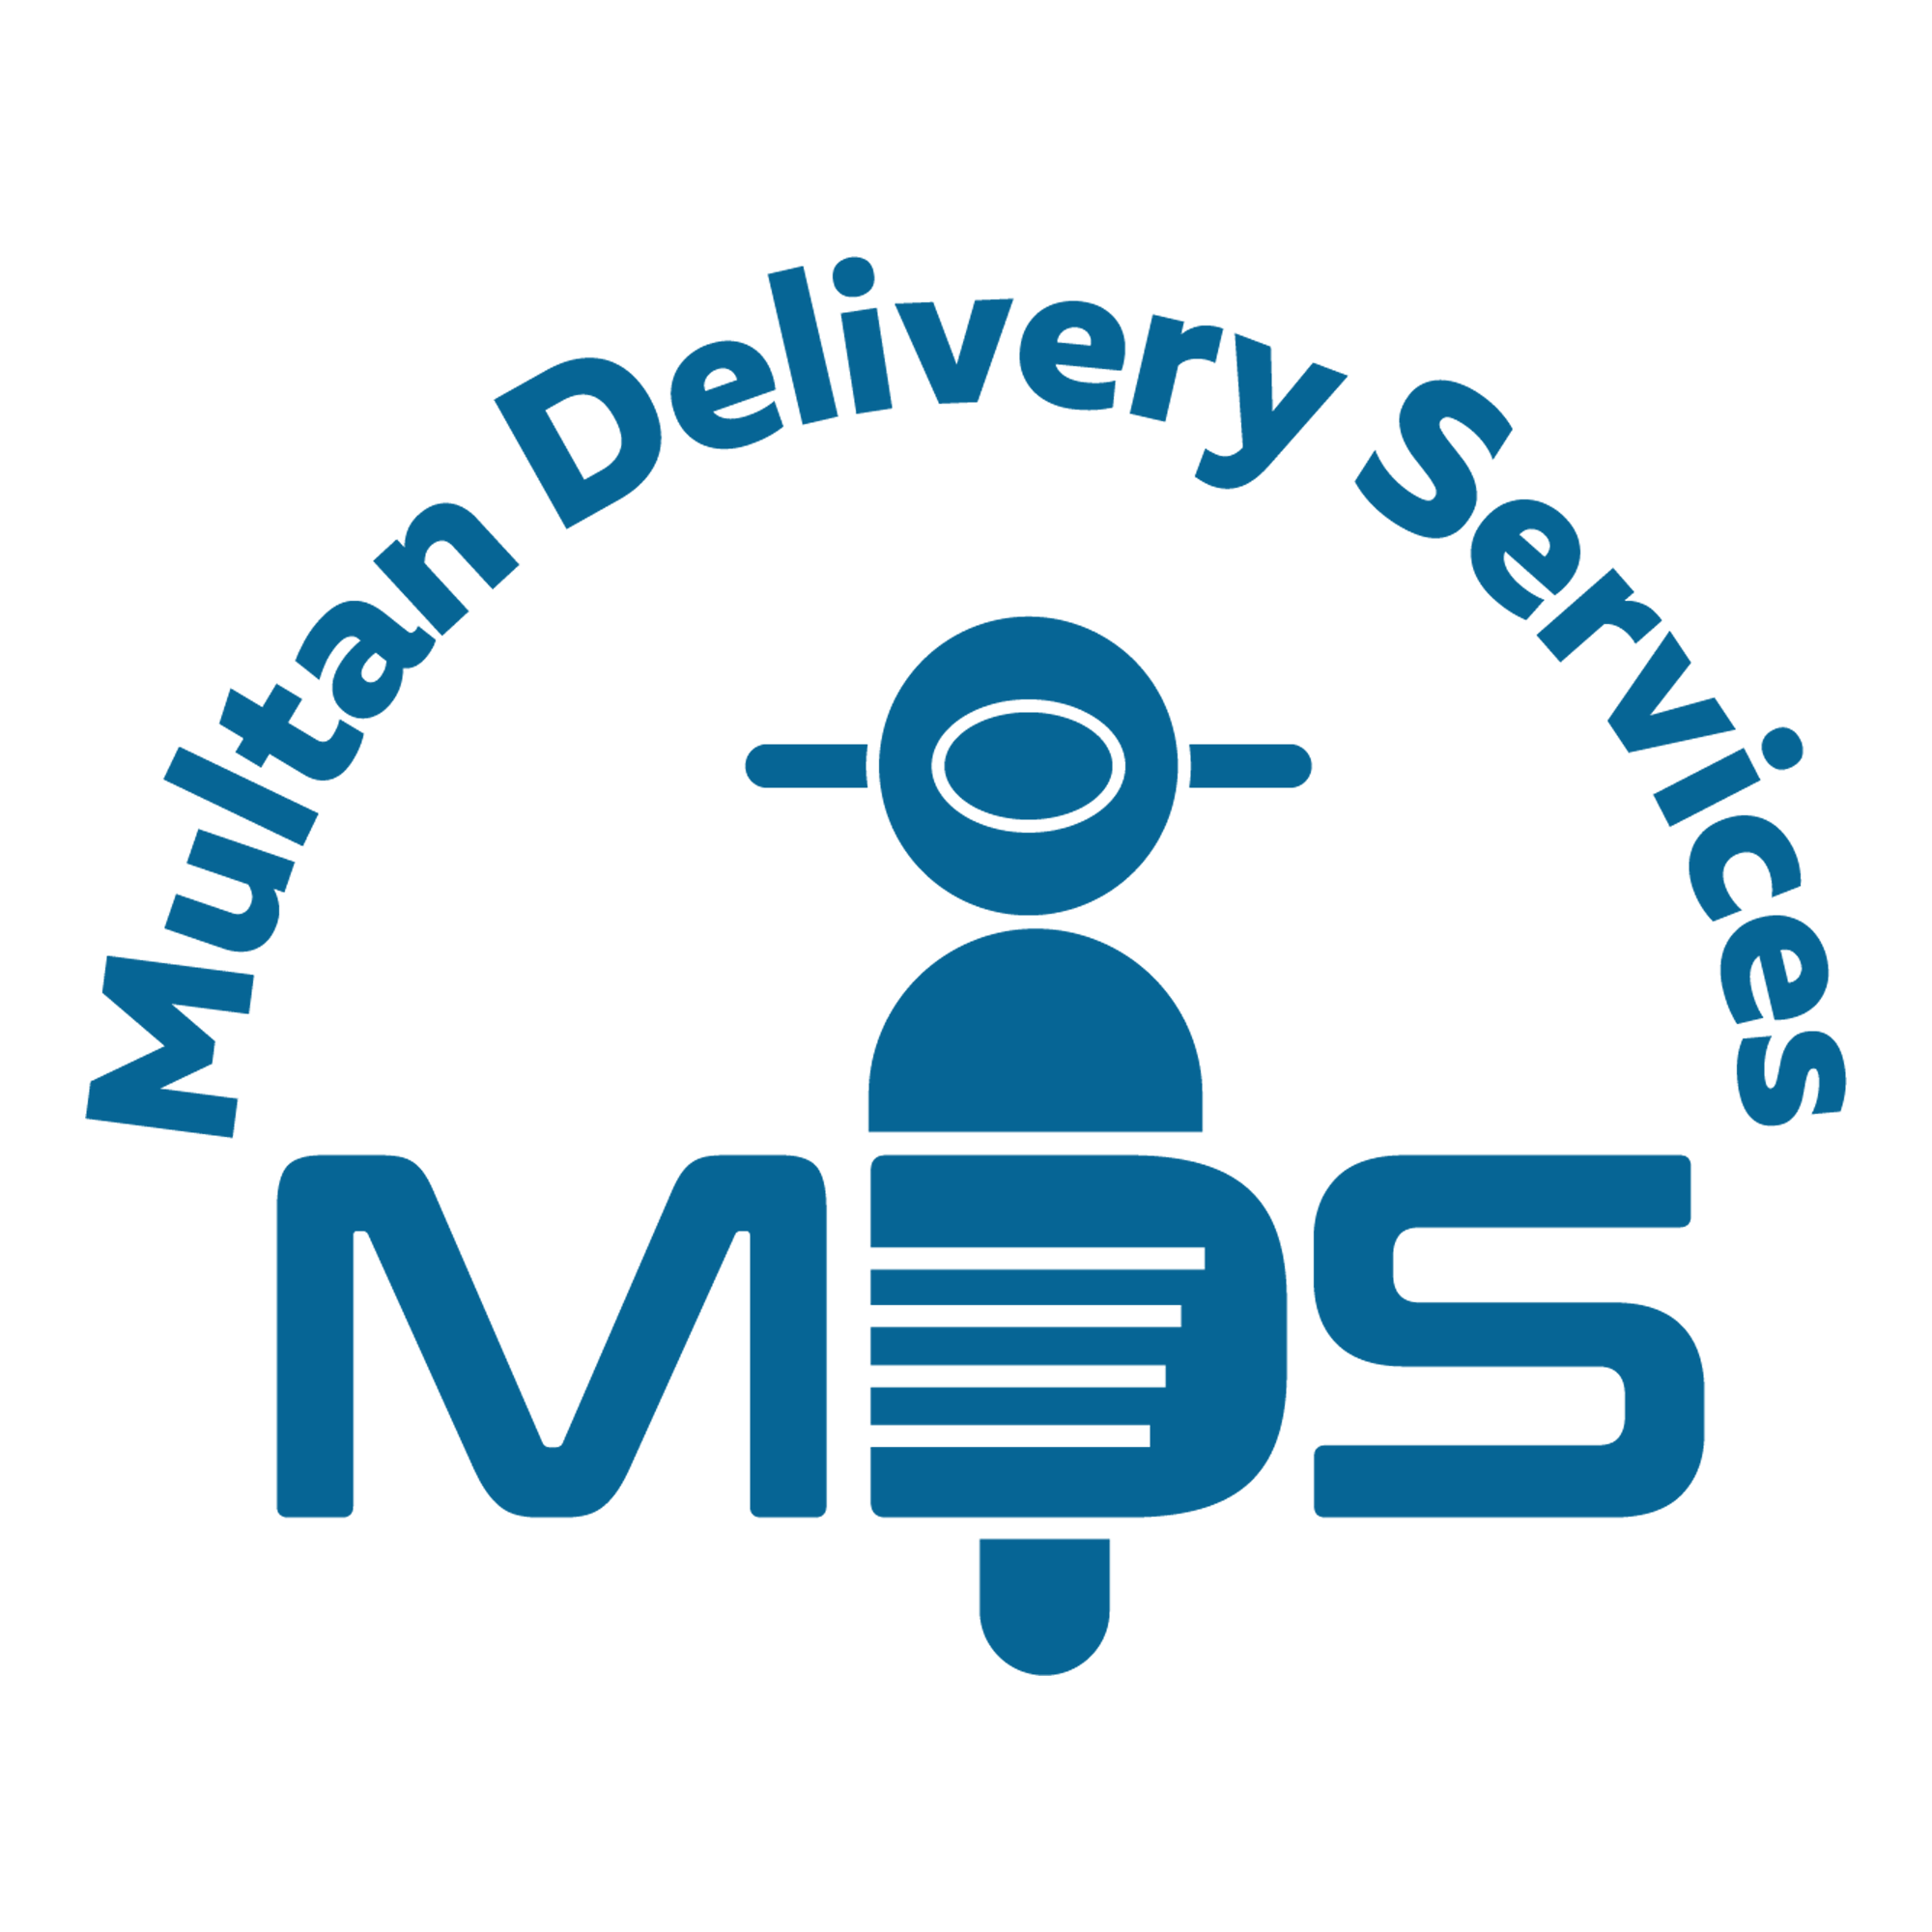 http://www.pakpositions.com/company/multan-delivery-services